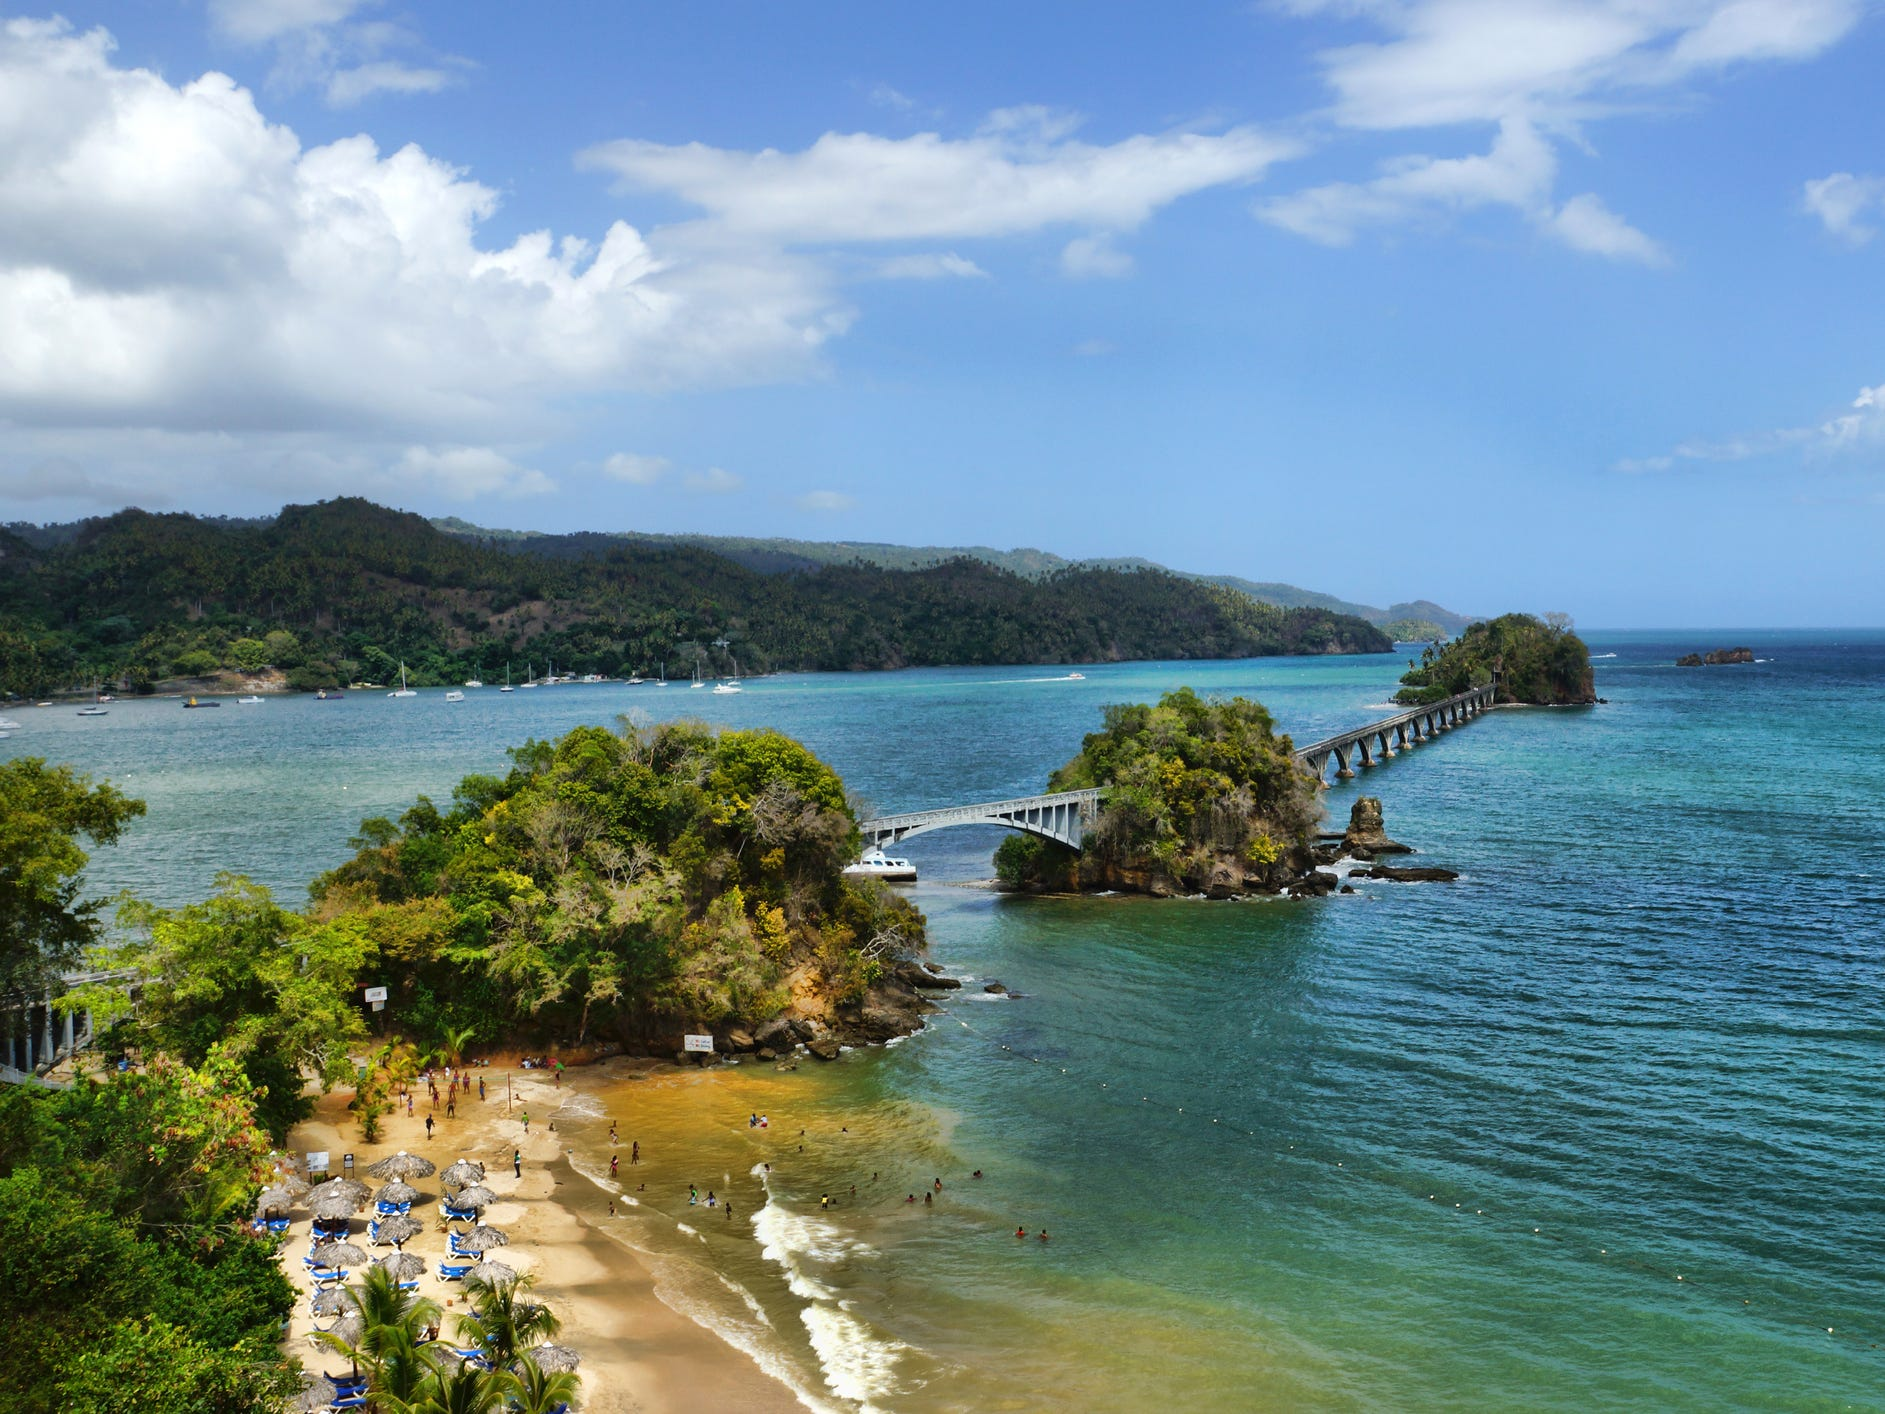 Samana, Dominican Republic: This newer resort area in the Dominican Republic ranks among the cheapest Caribbean spots this year on the Price of Travel Index. With its own airport (built in 2006) and direct routes from Montreal and Toronto, this is a hidden gem of the Caribbean. Uncrowded beaches, whale watching and a national park give this region a well-balanced mix of tropical vacation activities. Visit this year while it's still relatively quiet and prices are cheap.